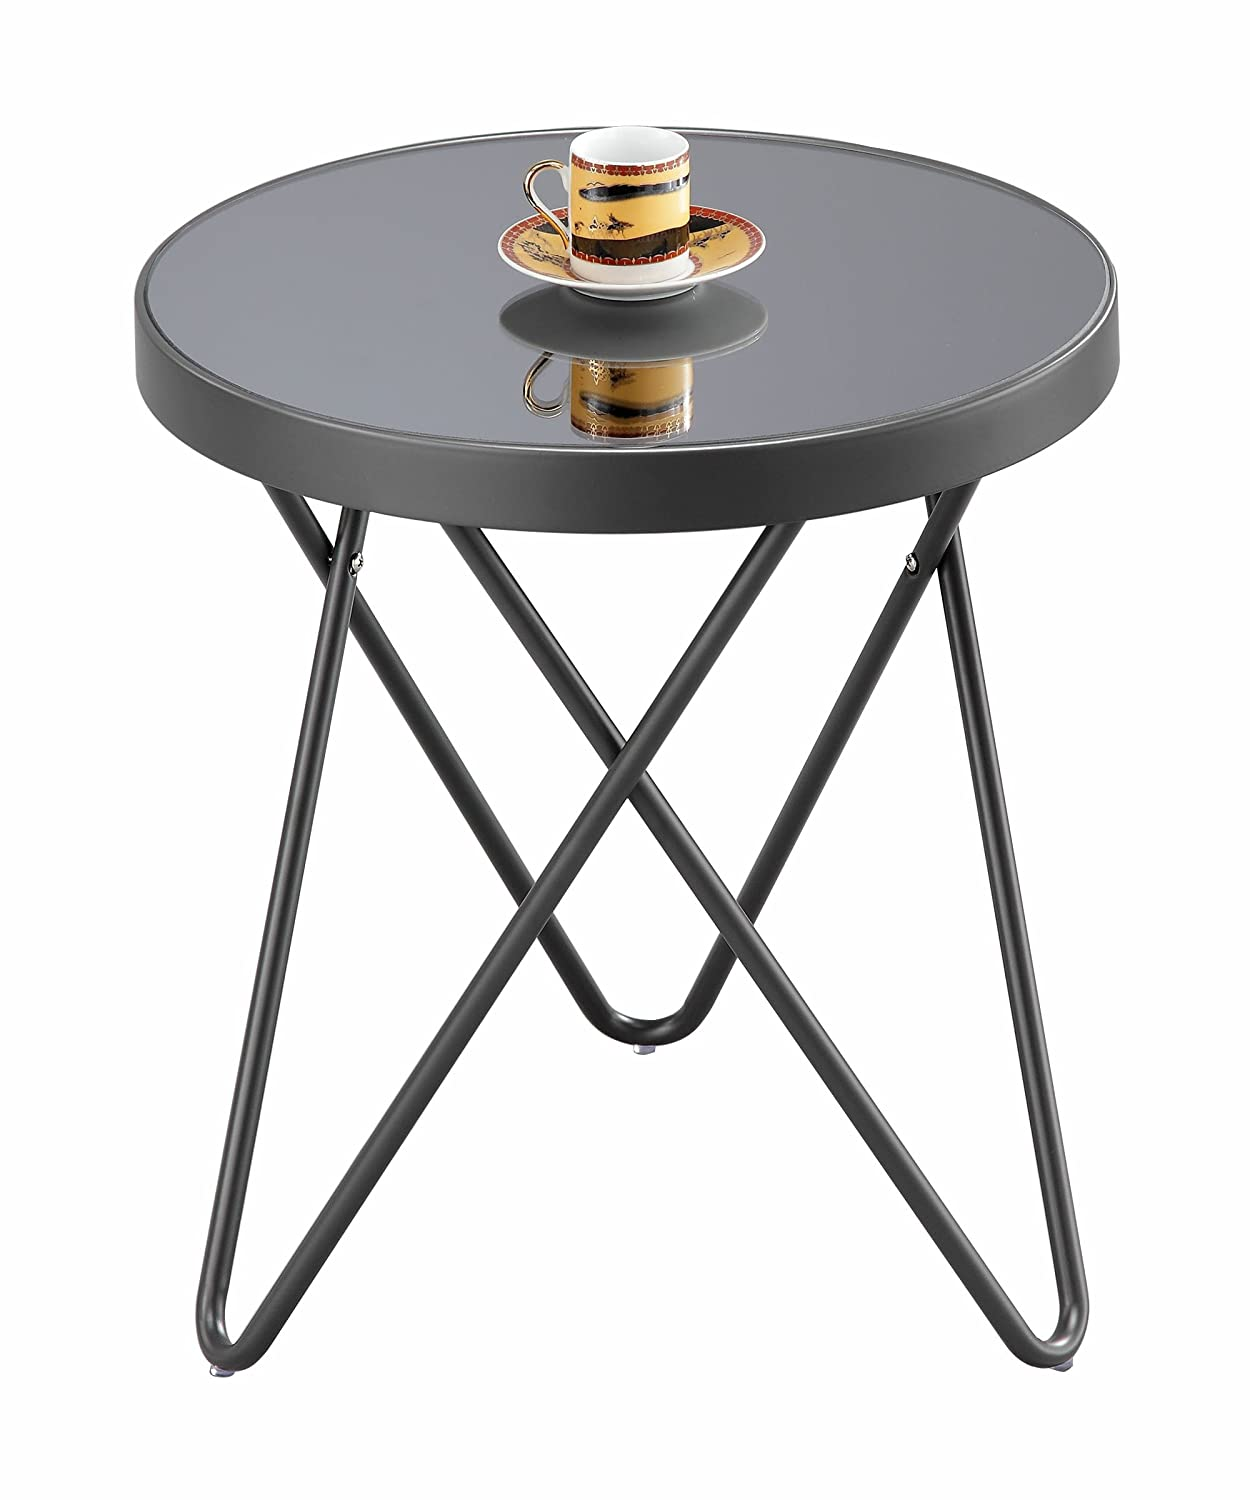 ASPECT Puccini Mirrored/Glass Round Side/Coffee/End/Lamp Table, Metal, Copper ST15MR